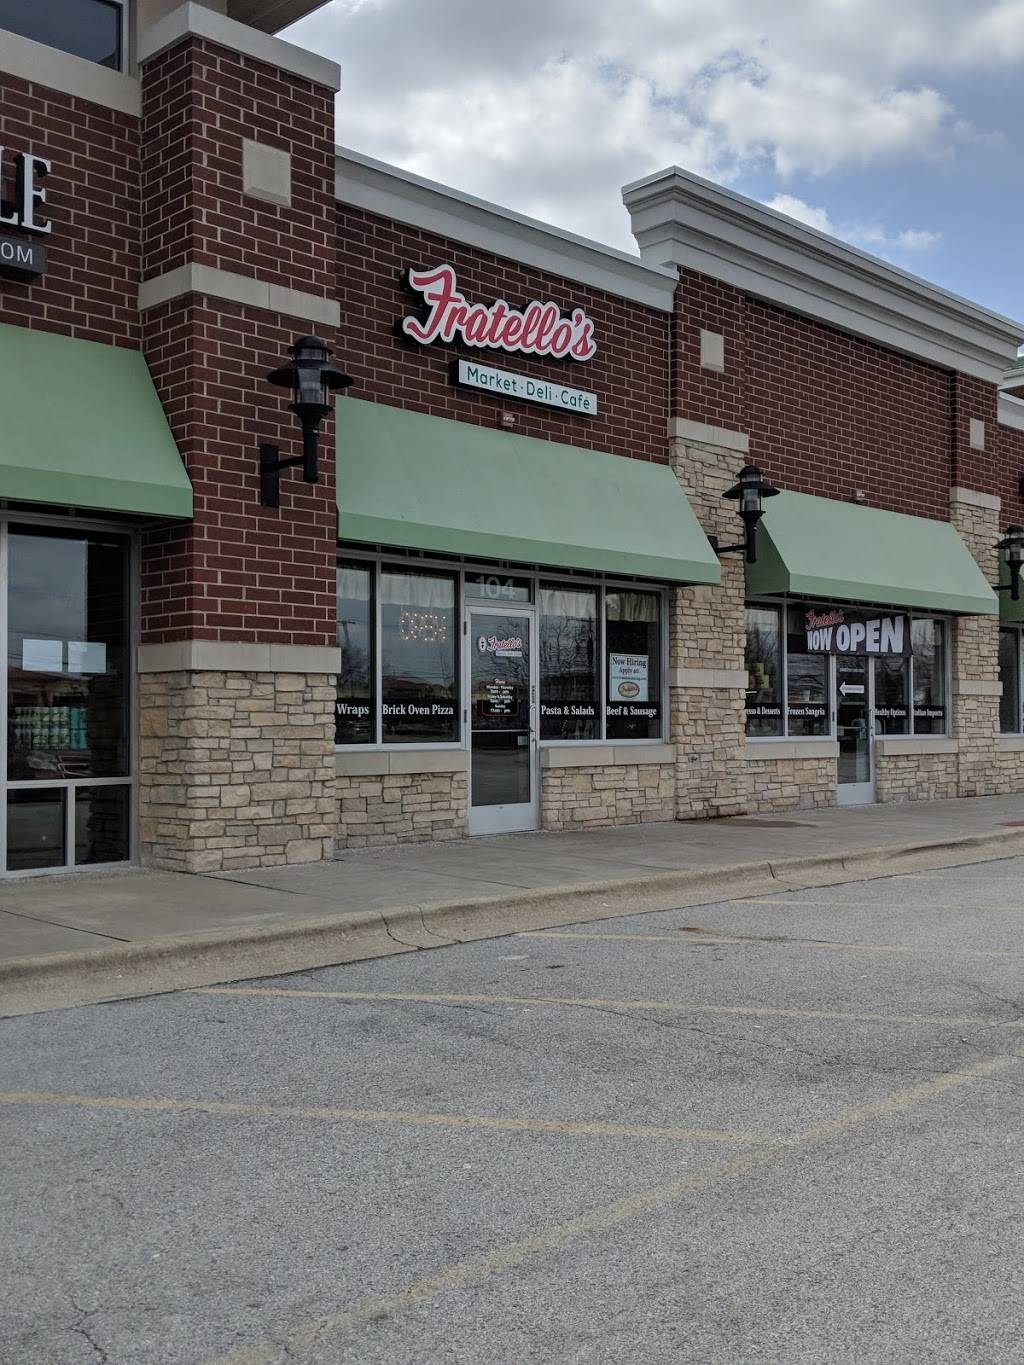 Fratellos Deli & Cafe   restaurant   7101 183rd St #104, Tinley Park, IL 60477, USA   7088642777 OR +1 708-864-2777